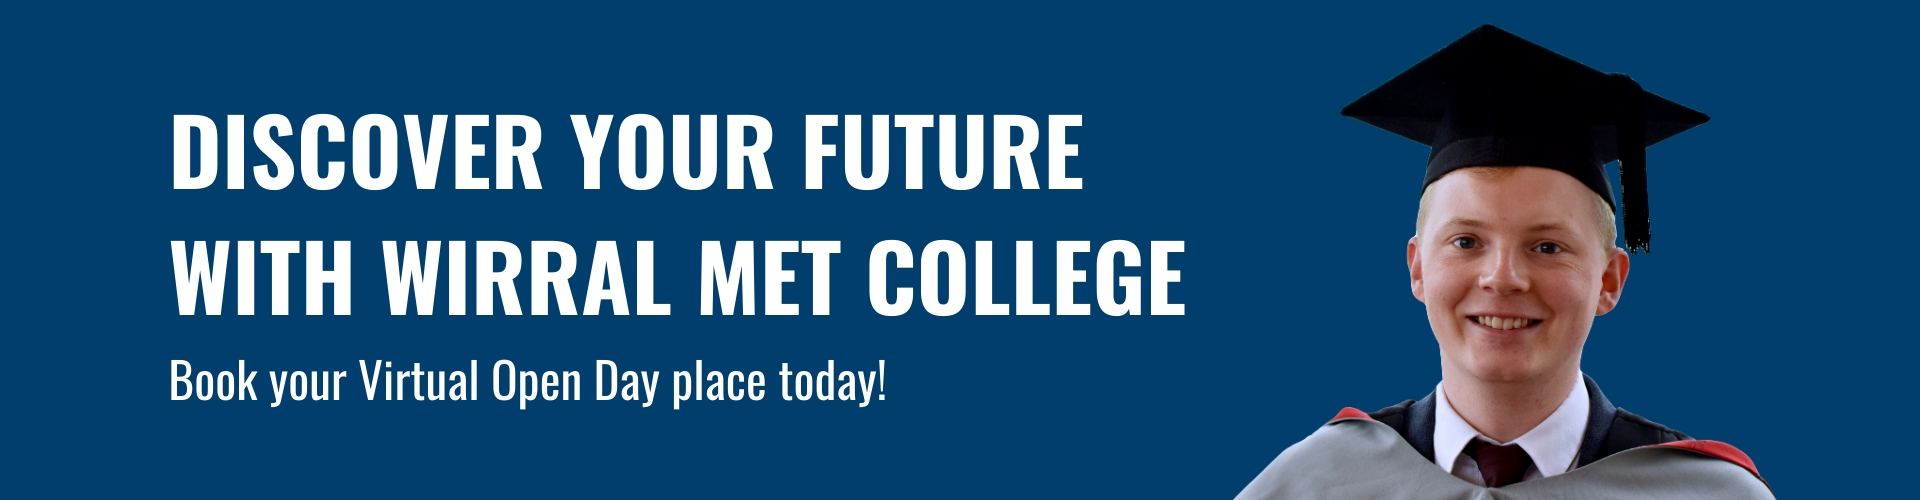 Discover Your Future With Wirral Met College. Book Your Virtual Open Day Place Today. Man in cap and gown on blue background.